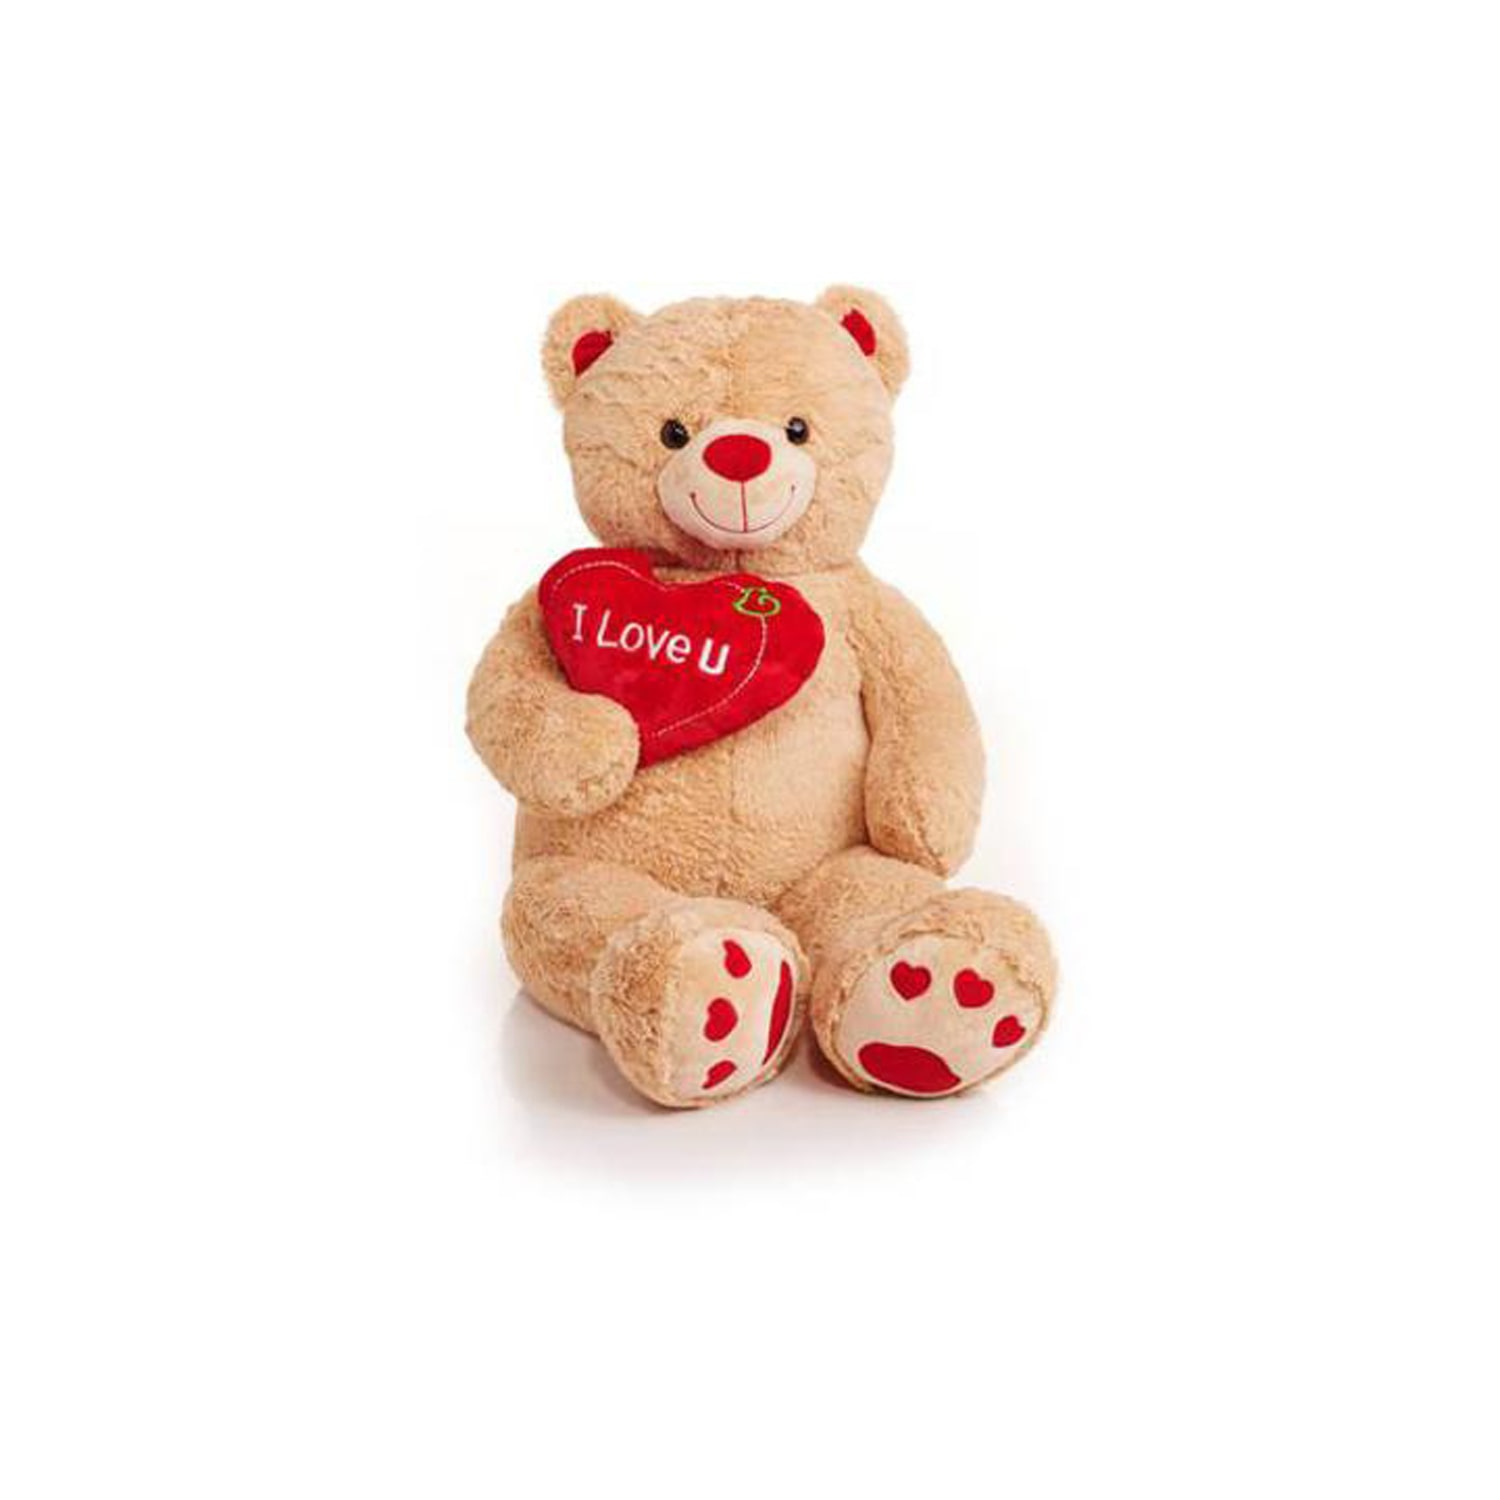 "Jumbo 48"" Teddy Bear with ""I Love You"" Heart by Overstock"